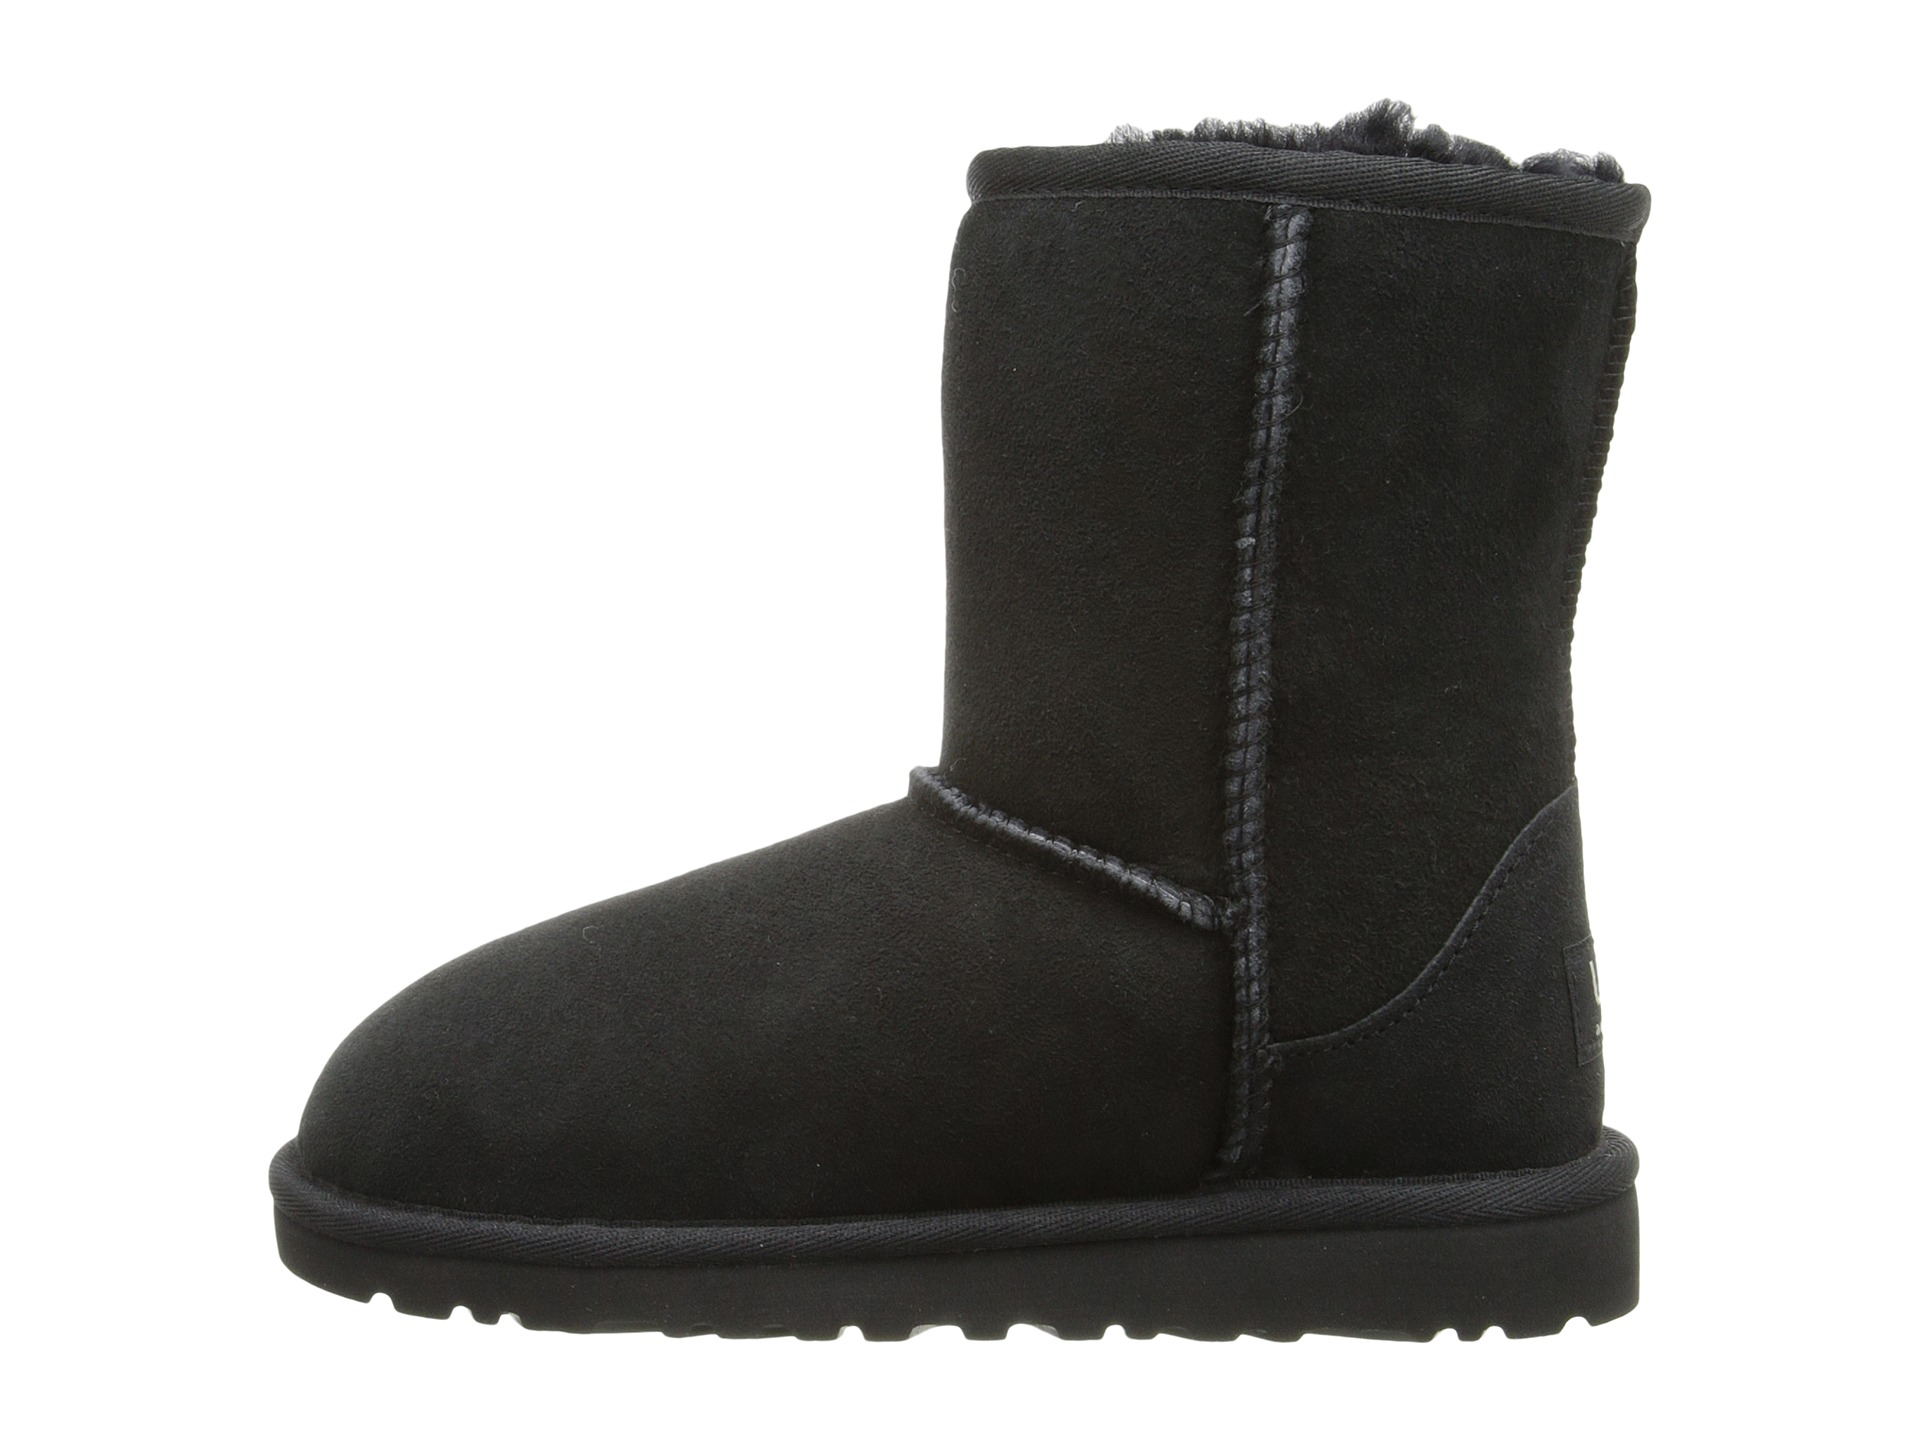 Can Black Suede Shoes Be Dyed